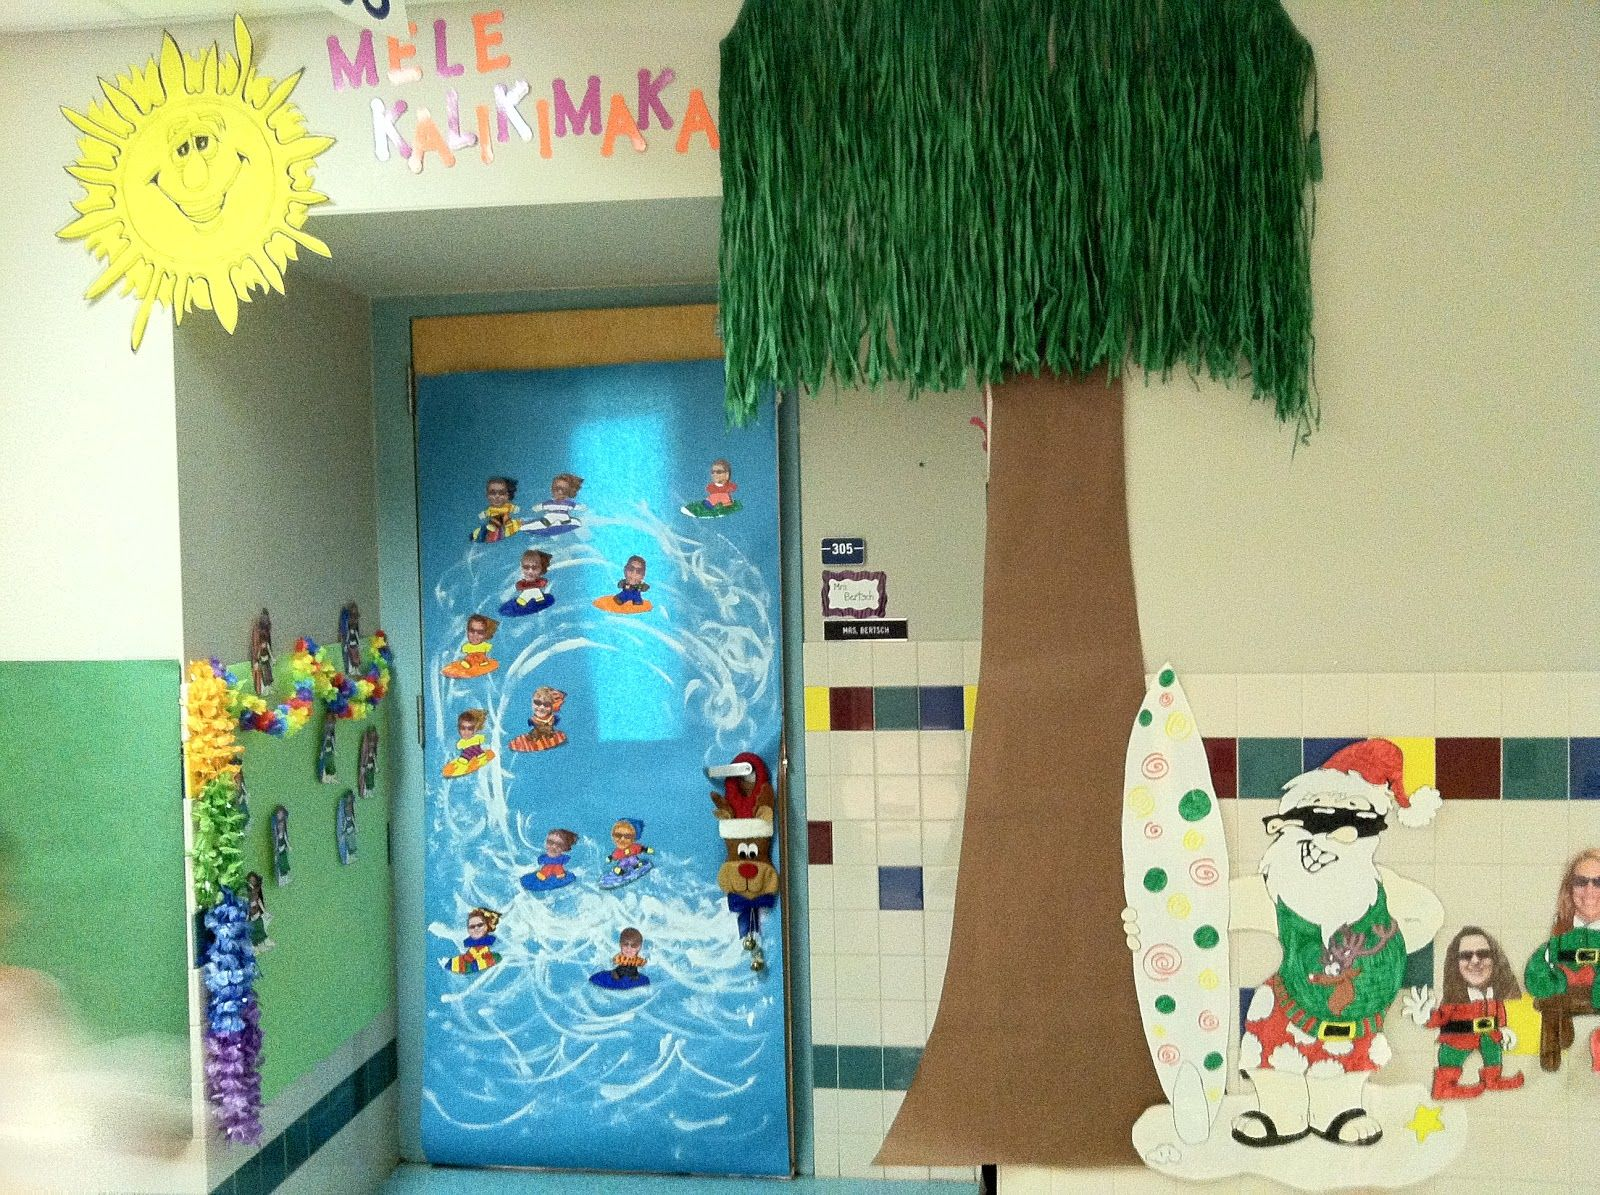 Our school hosted a Christmas door decorating